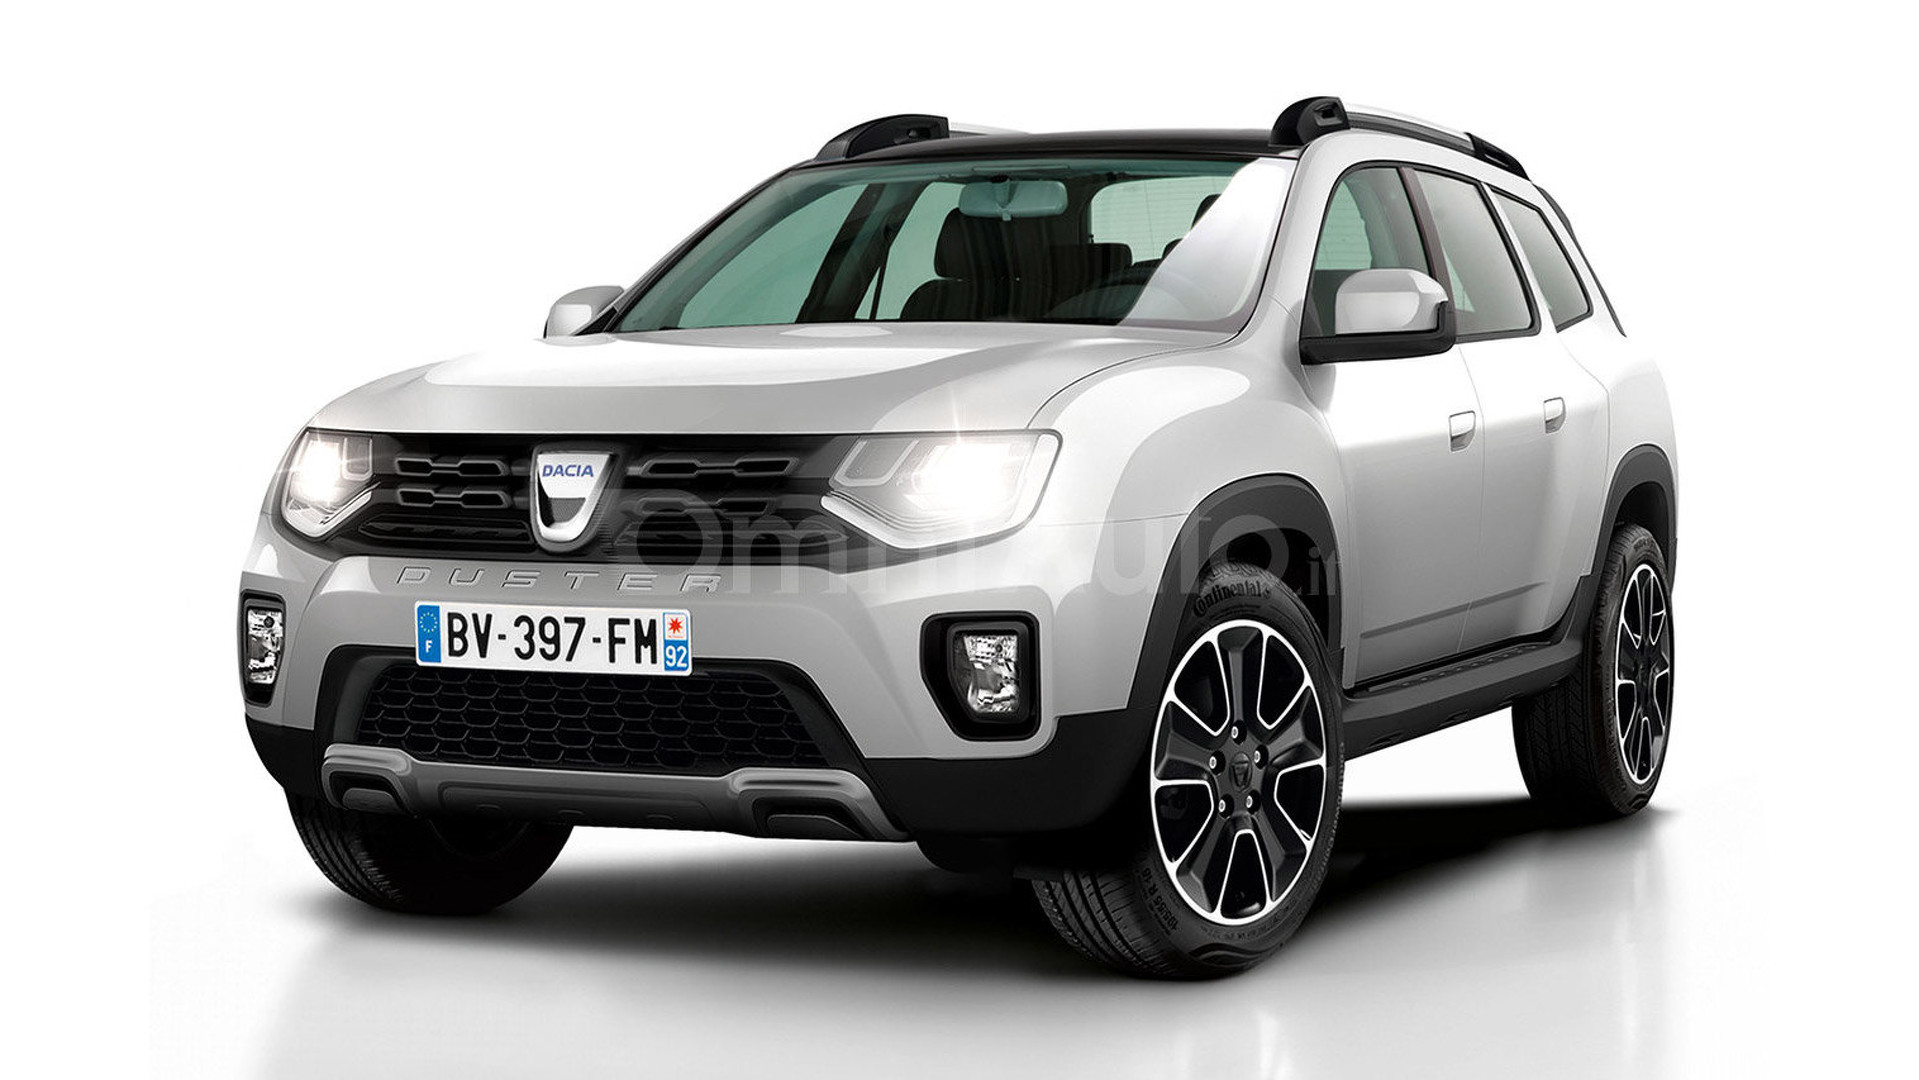 2017 dacia duster next generation review future auto review - 2017 Dacia Duster Gets Rendered Product 2016 05 28 01 00 01